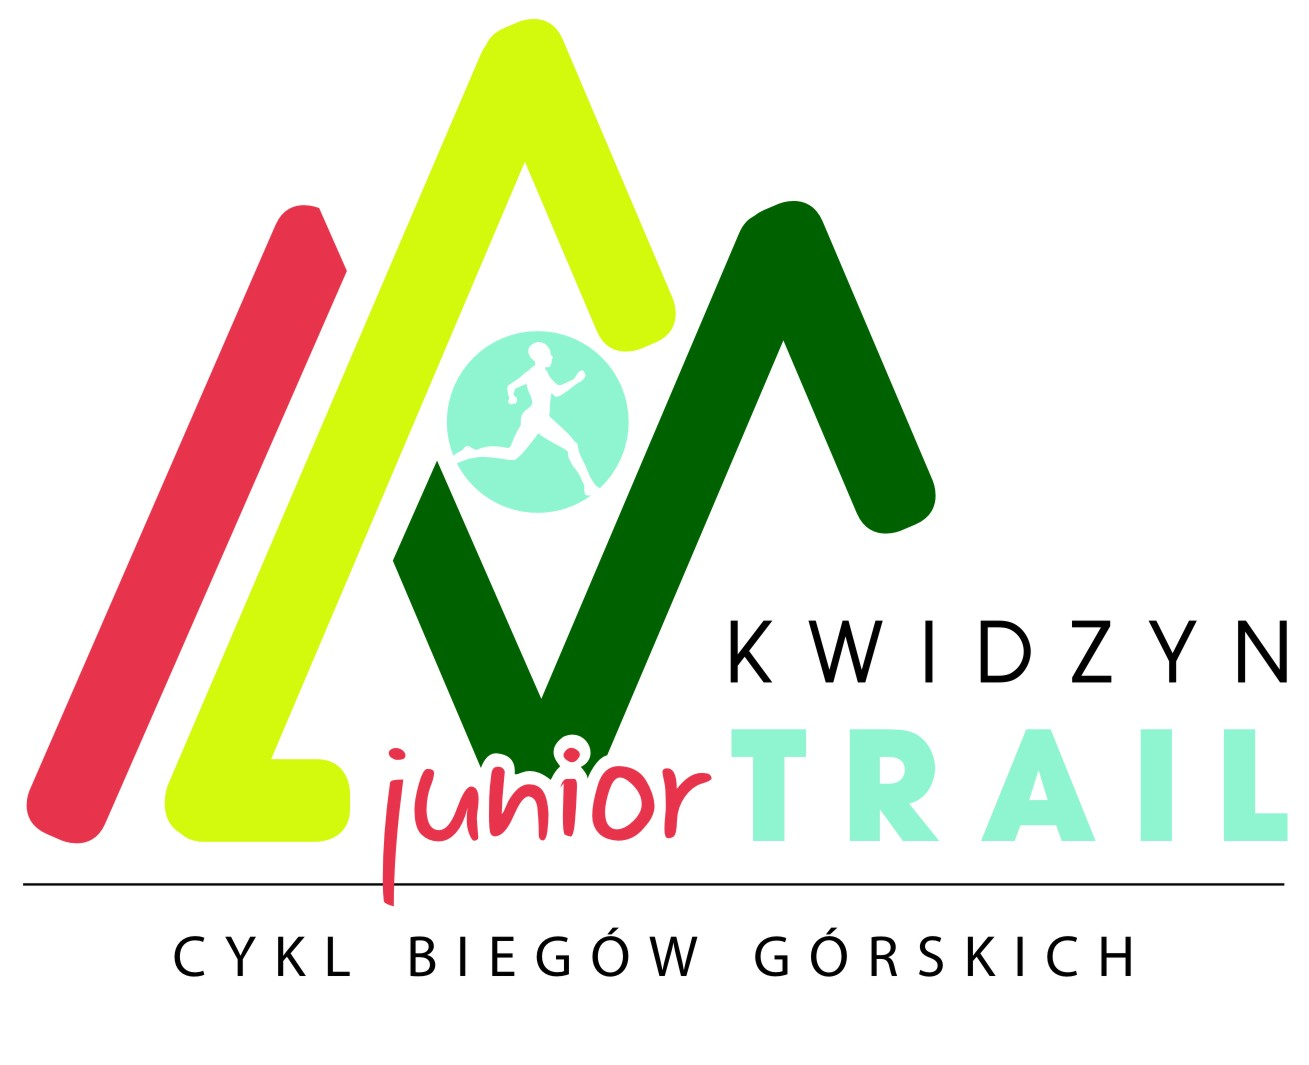 kwidzyn junior trail logo